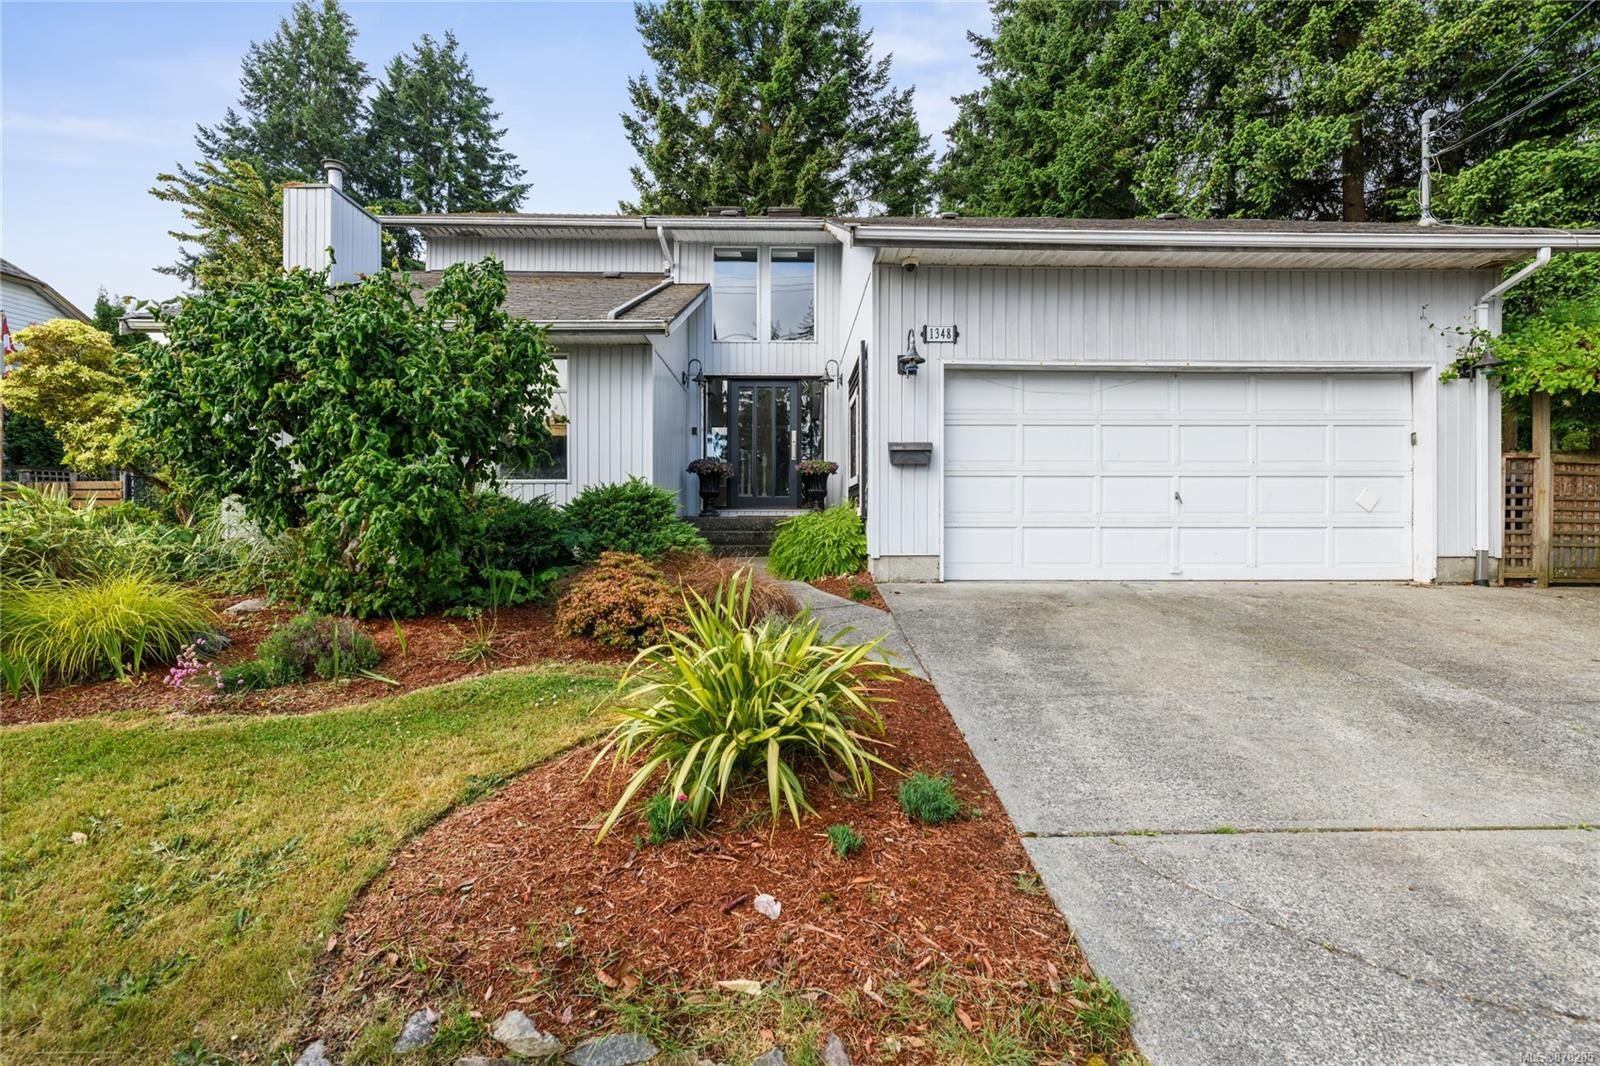 Main Photo: 1348 Argyle Ave in : Na Departure Bay House for sale (Nanaimo)  : MLS®# 878285